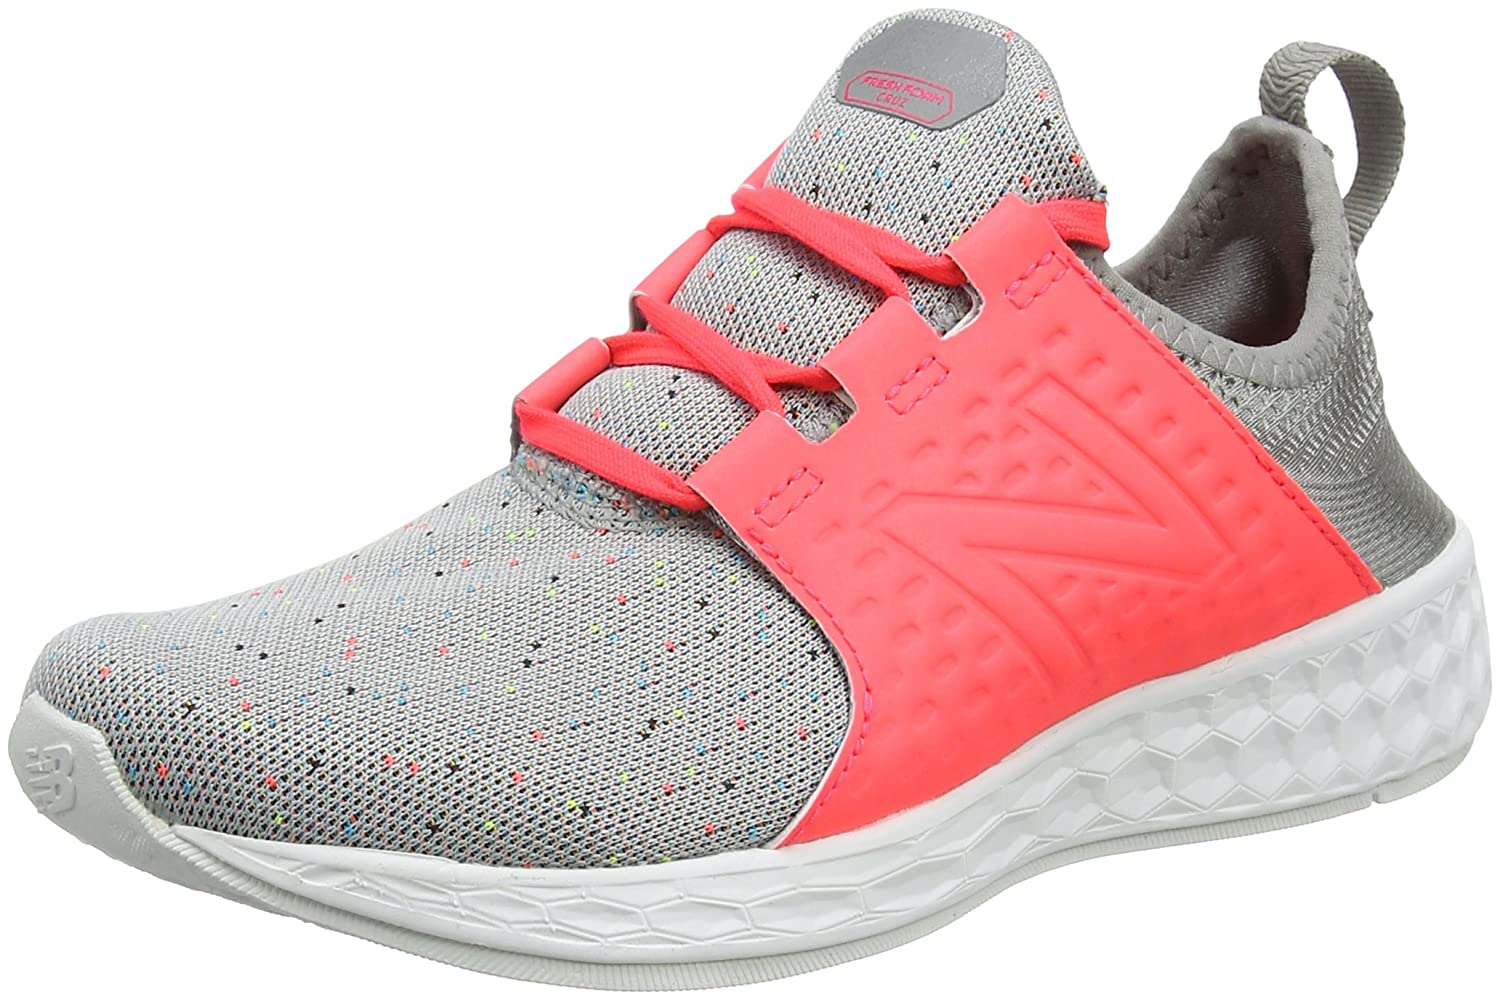 New Balance Fresh Foam Cruz Sport Pack Reflective Damen Laufschuhe